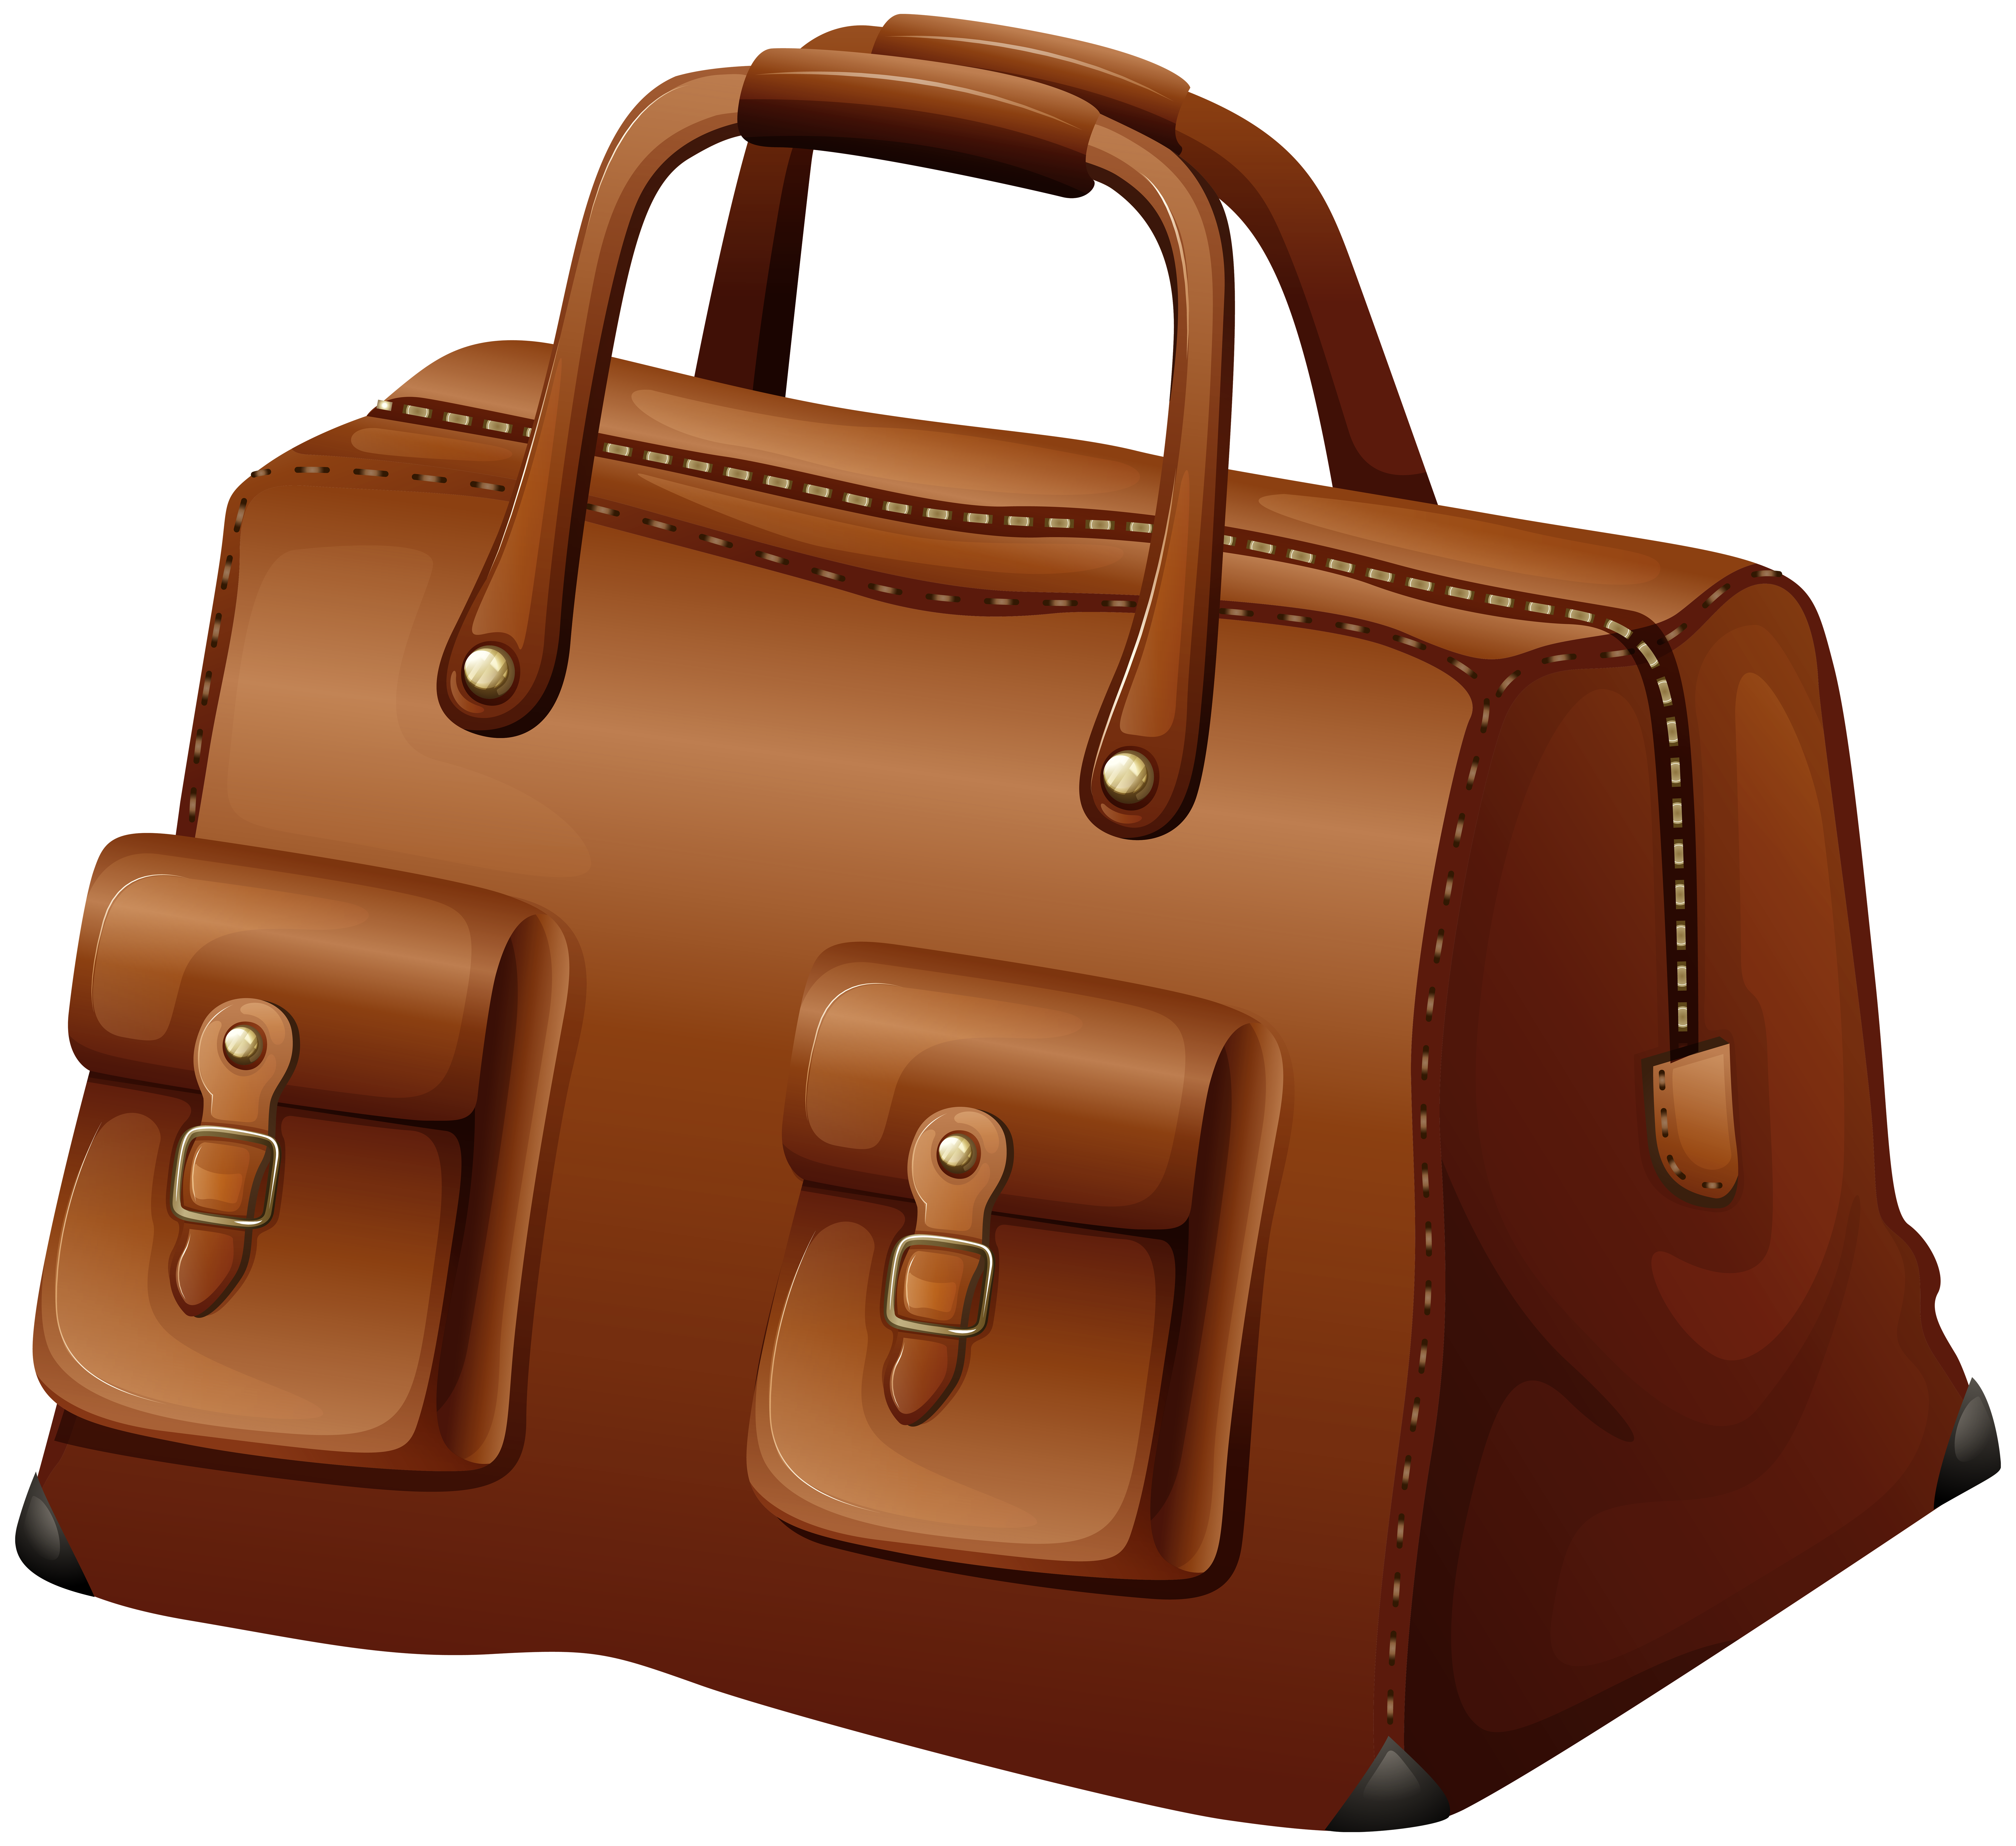 Luggage clipart border. Travel bag transparent png